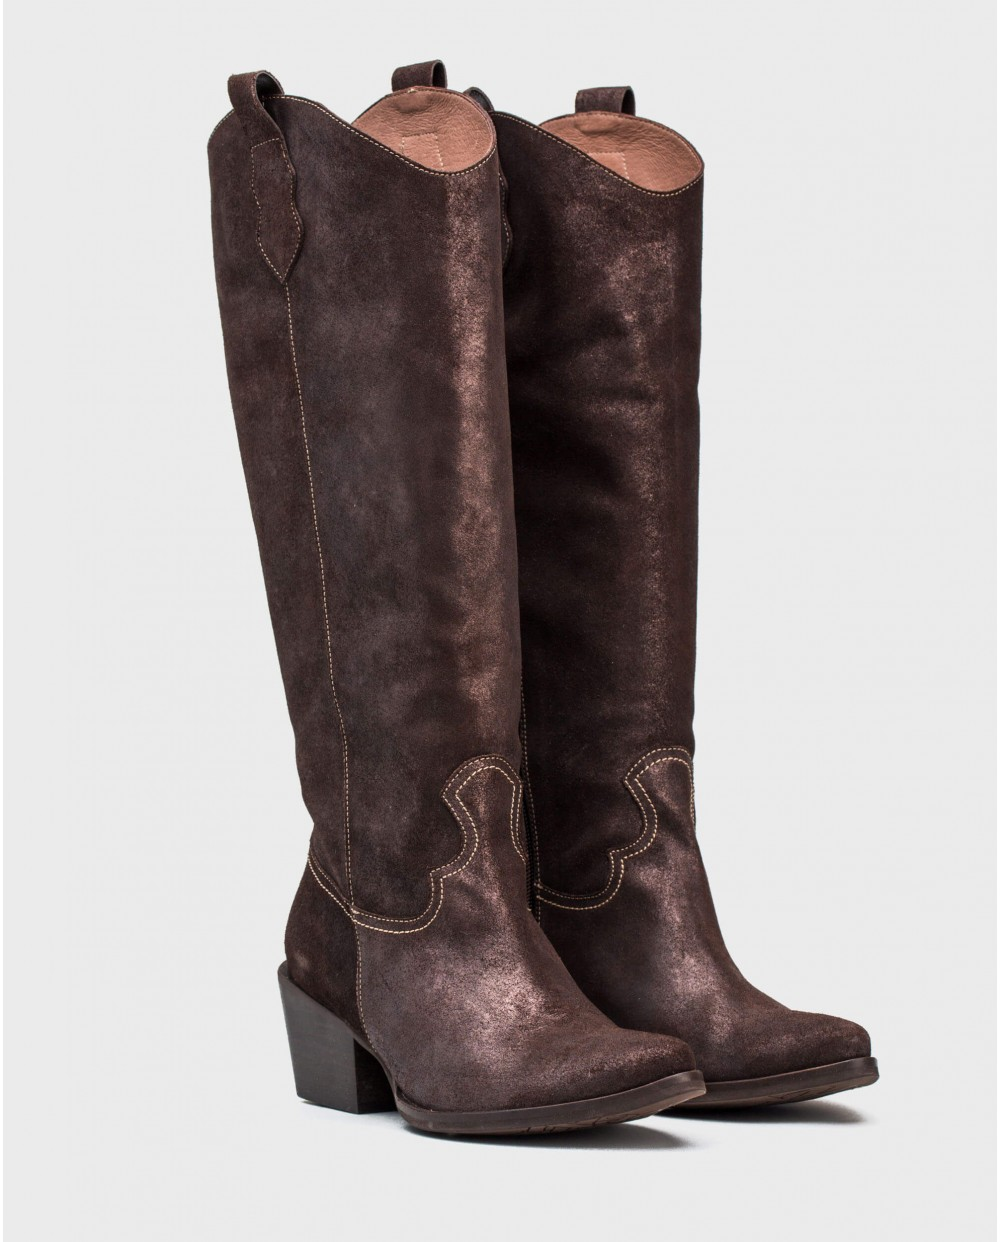 Wonders-Boots-Metallic leather cowboy boot